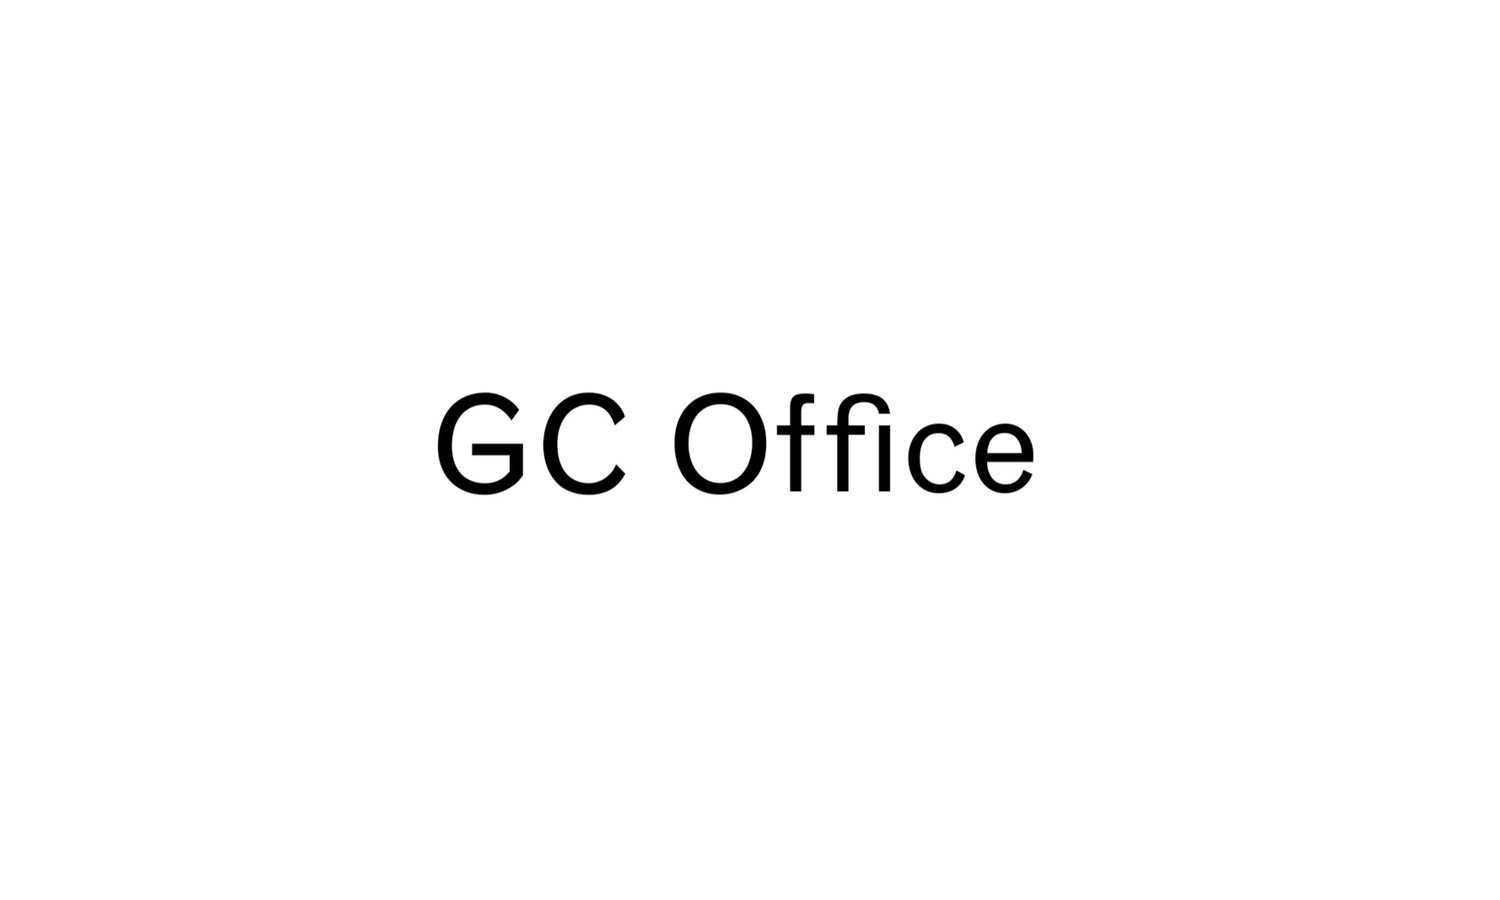 GC Office